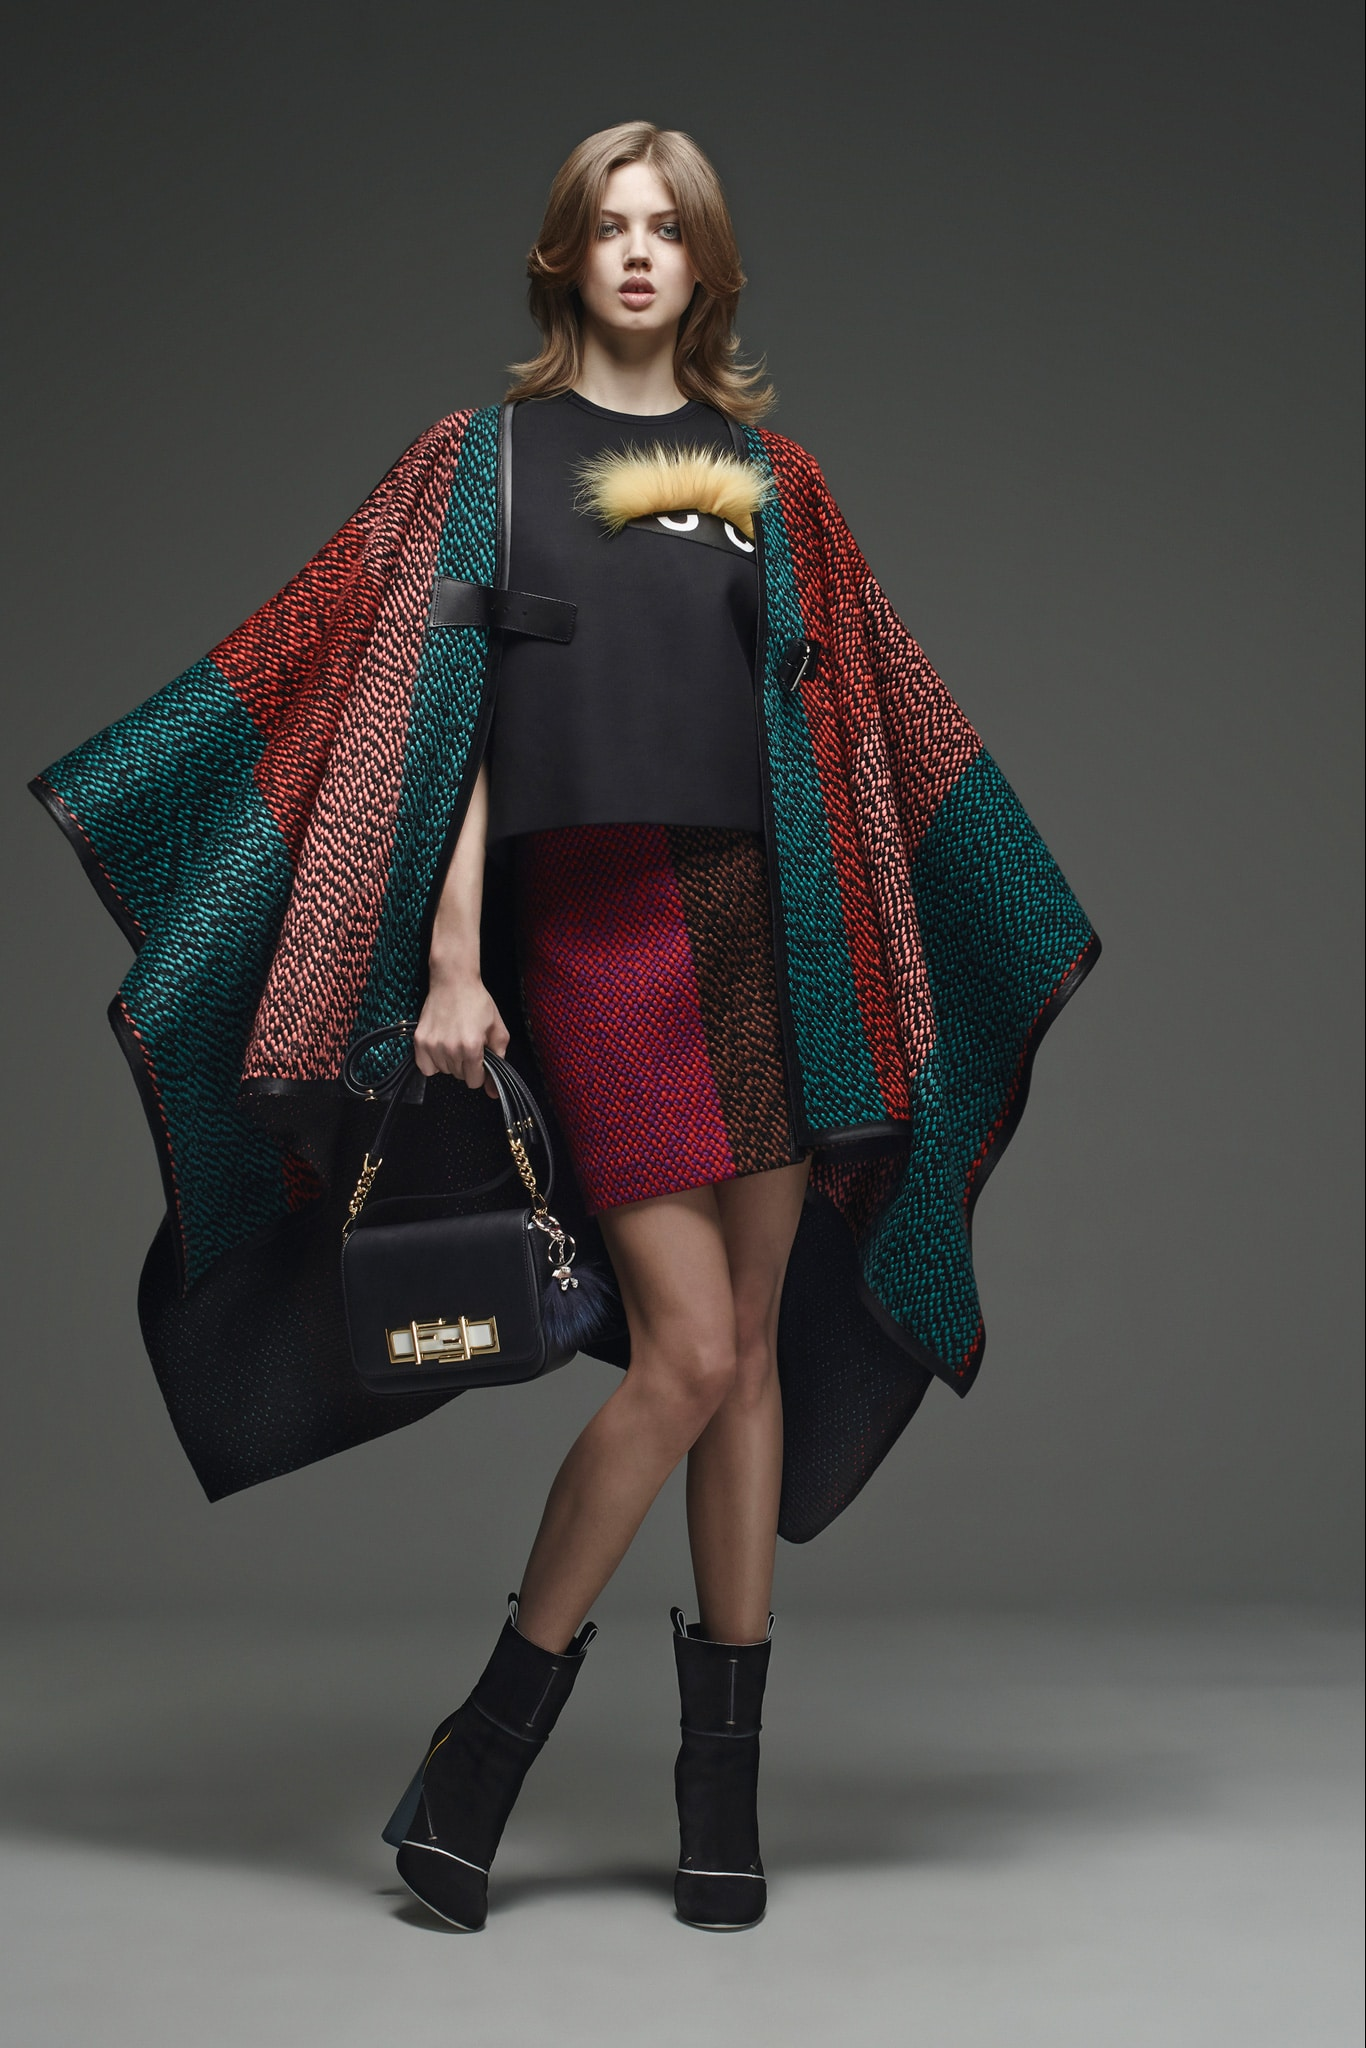 e472d719a1 Fendi Pre-Fall 2015 Lookbook Collection